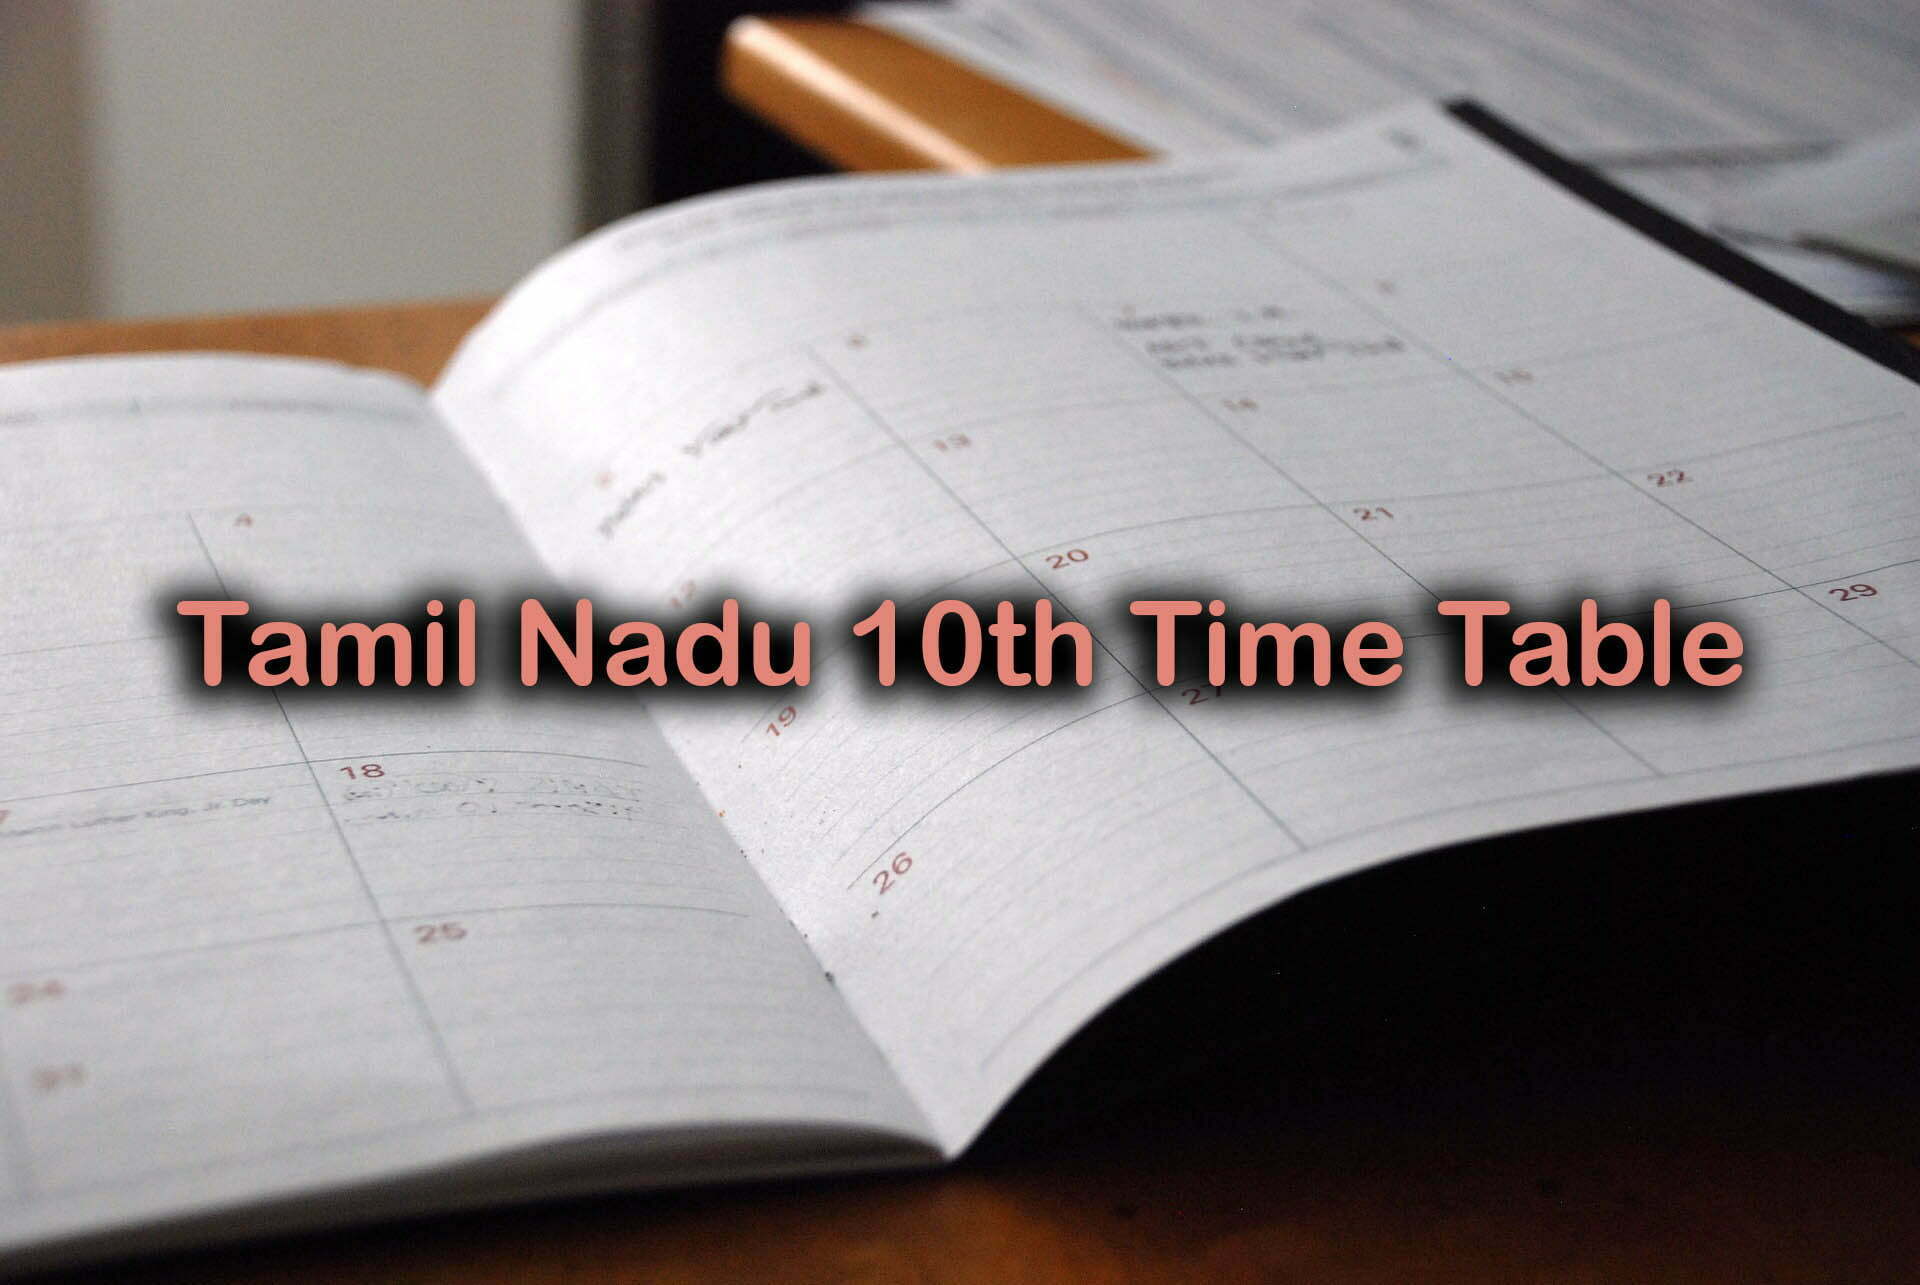 Tamil Nadu 10th Time Table 2020 : TN SSLC Time Table 2020